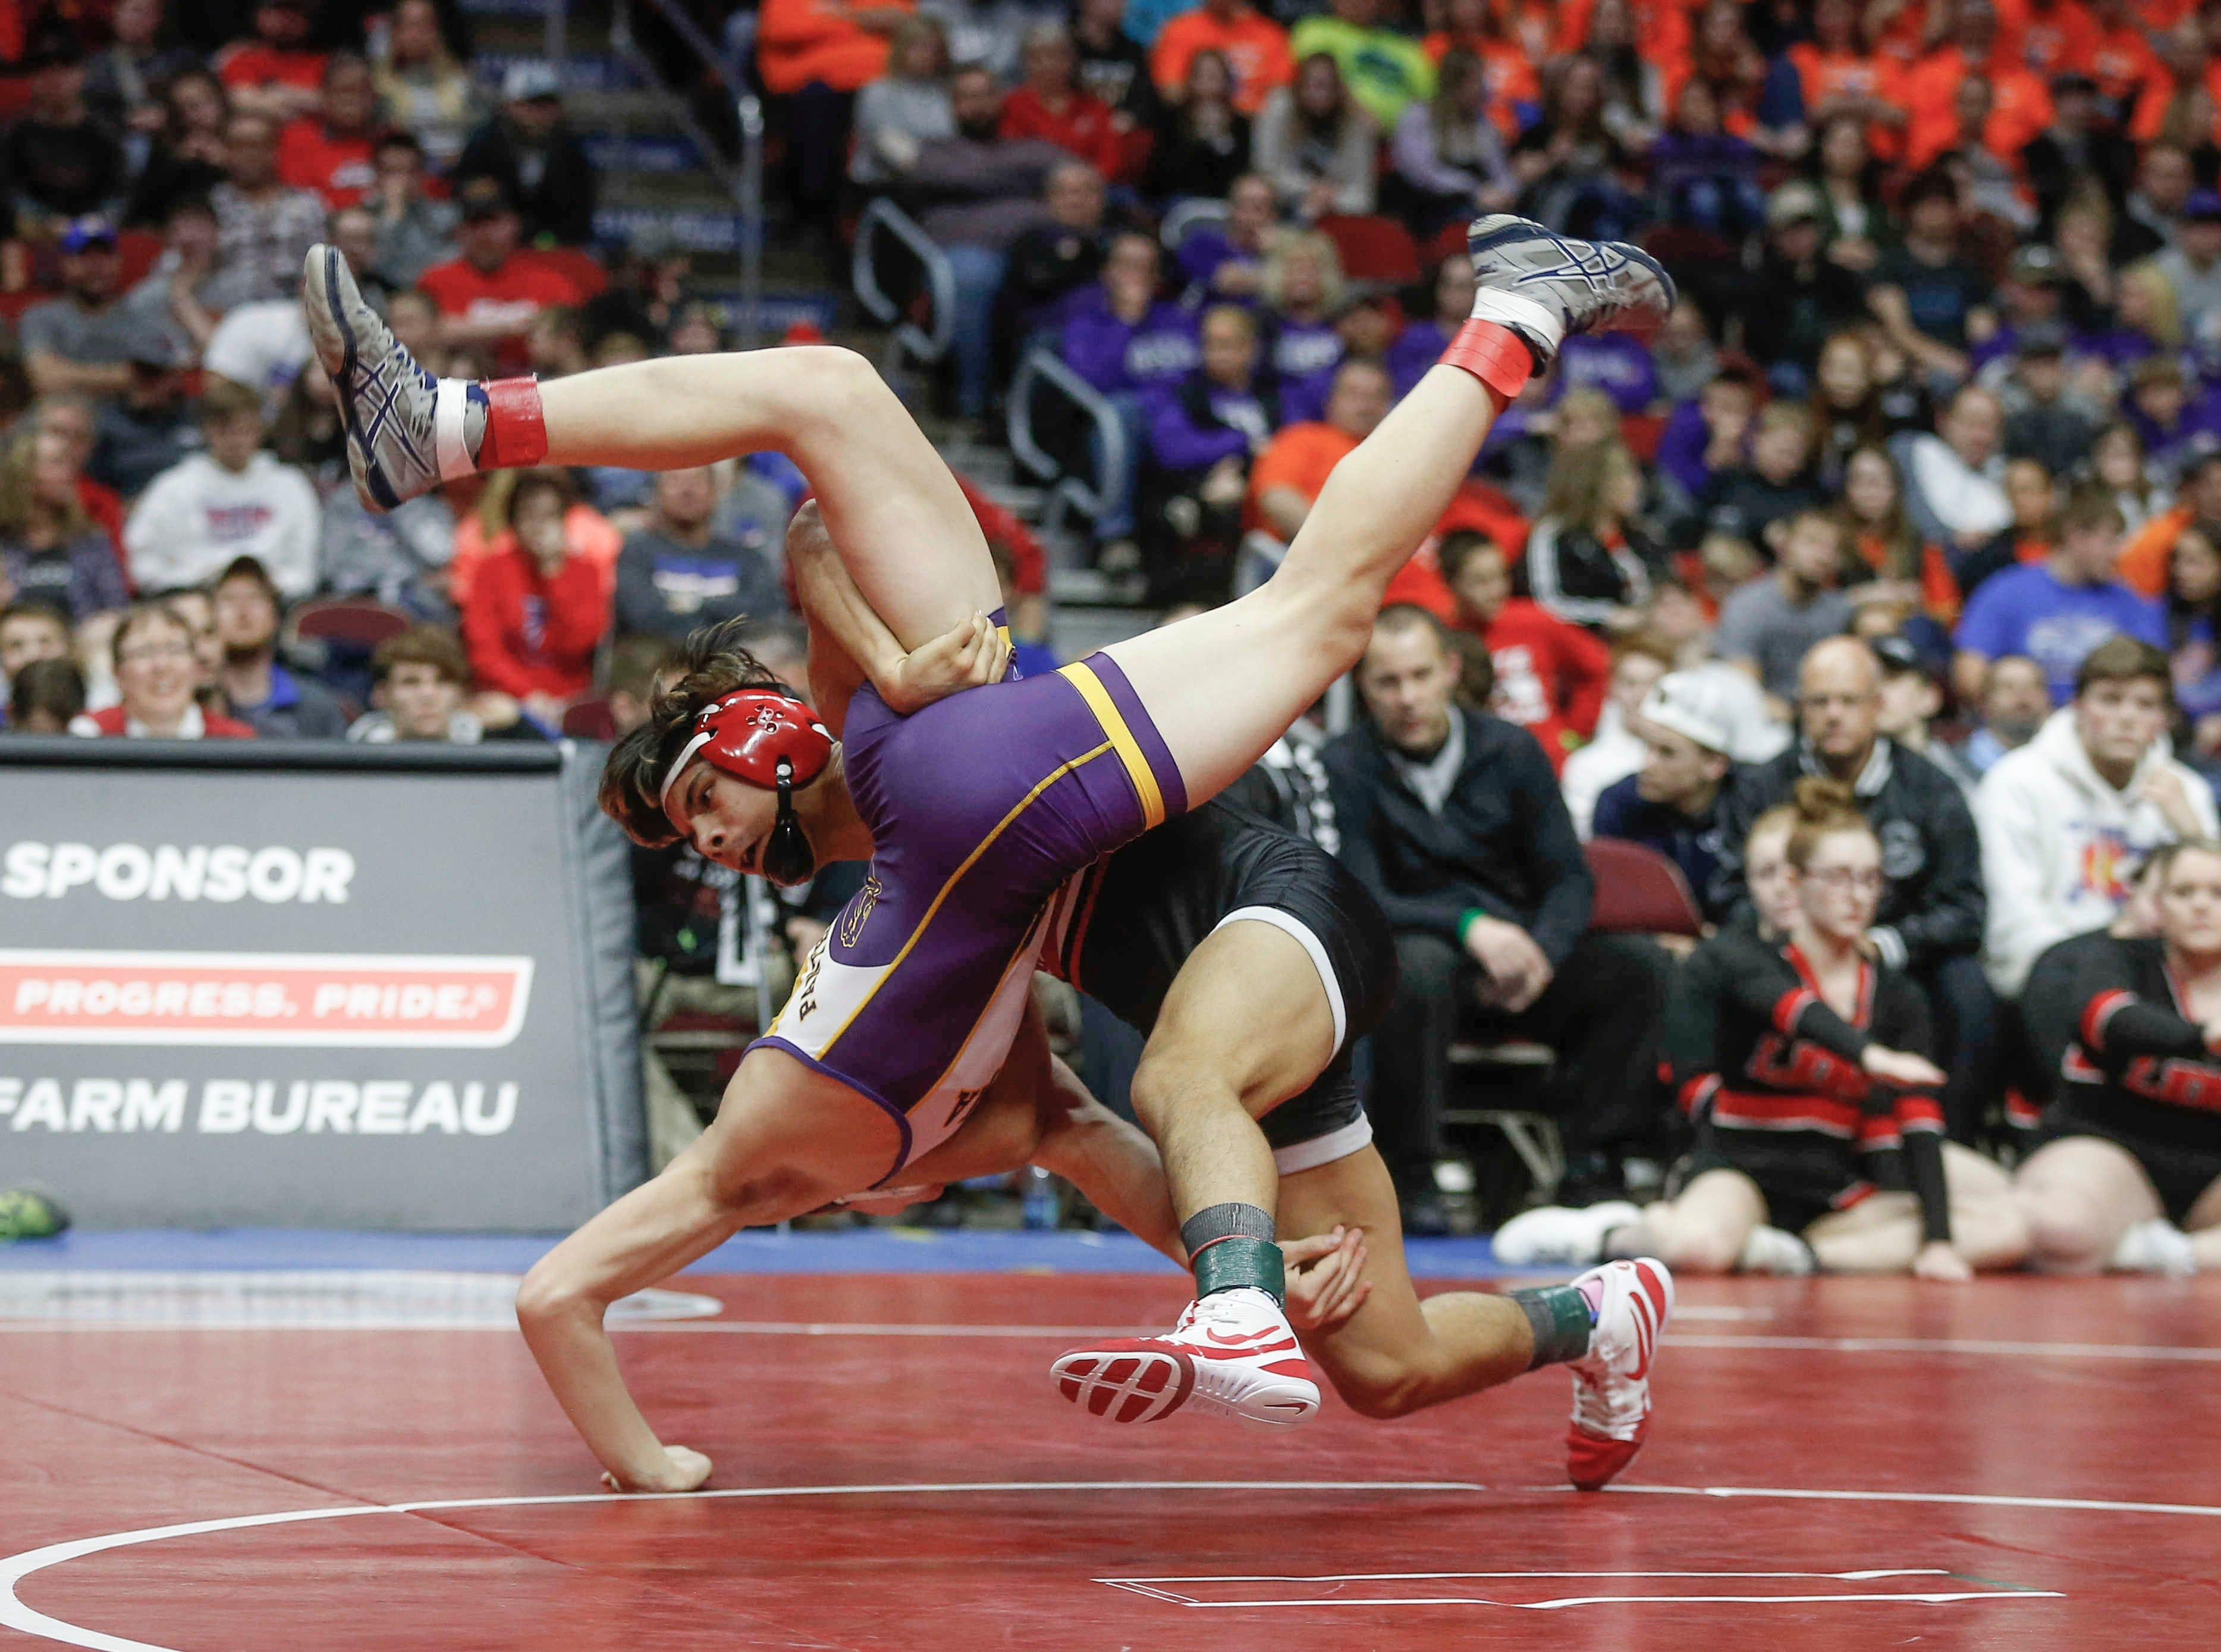 Lisbon freshman Robert Avila Jr. dumps Logan-Magnolia sophomore Briar Reisz in their Class 1A finals match at 126 pounds during the state wrestling championships on Saturday, Feb. 16, 2019, at Wells Fargo Arena in Des Moines.